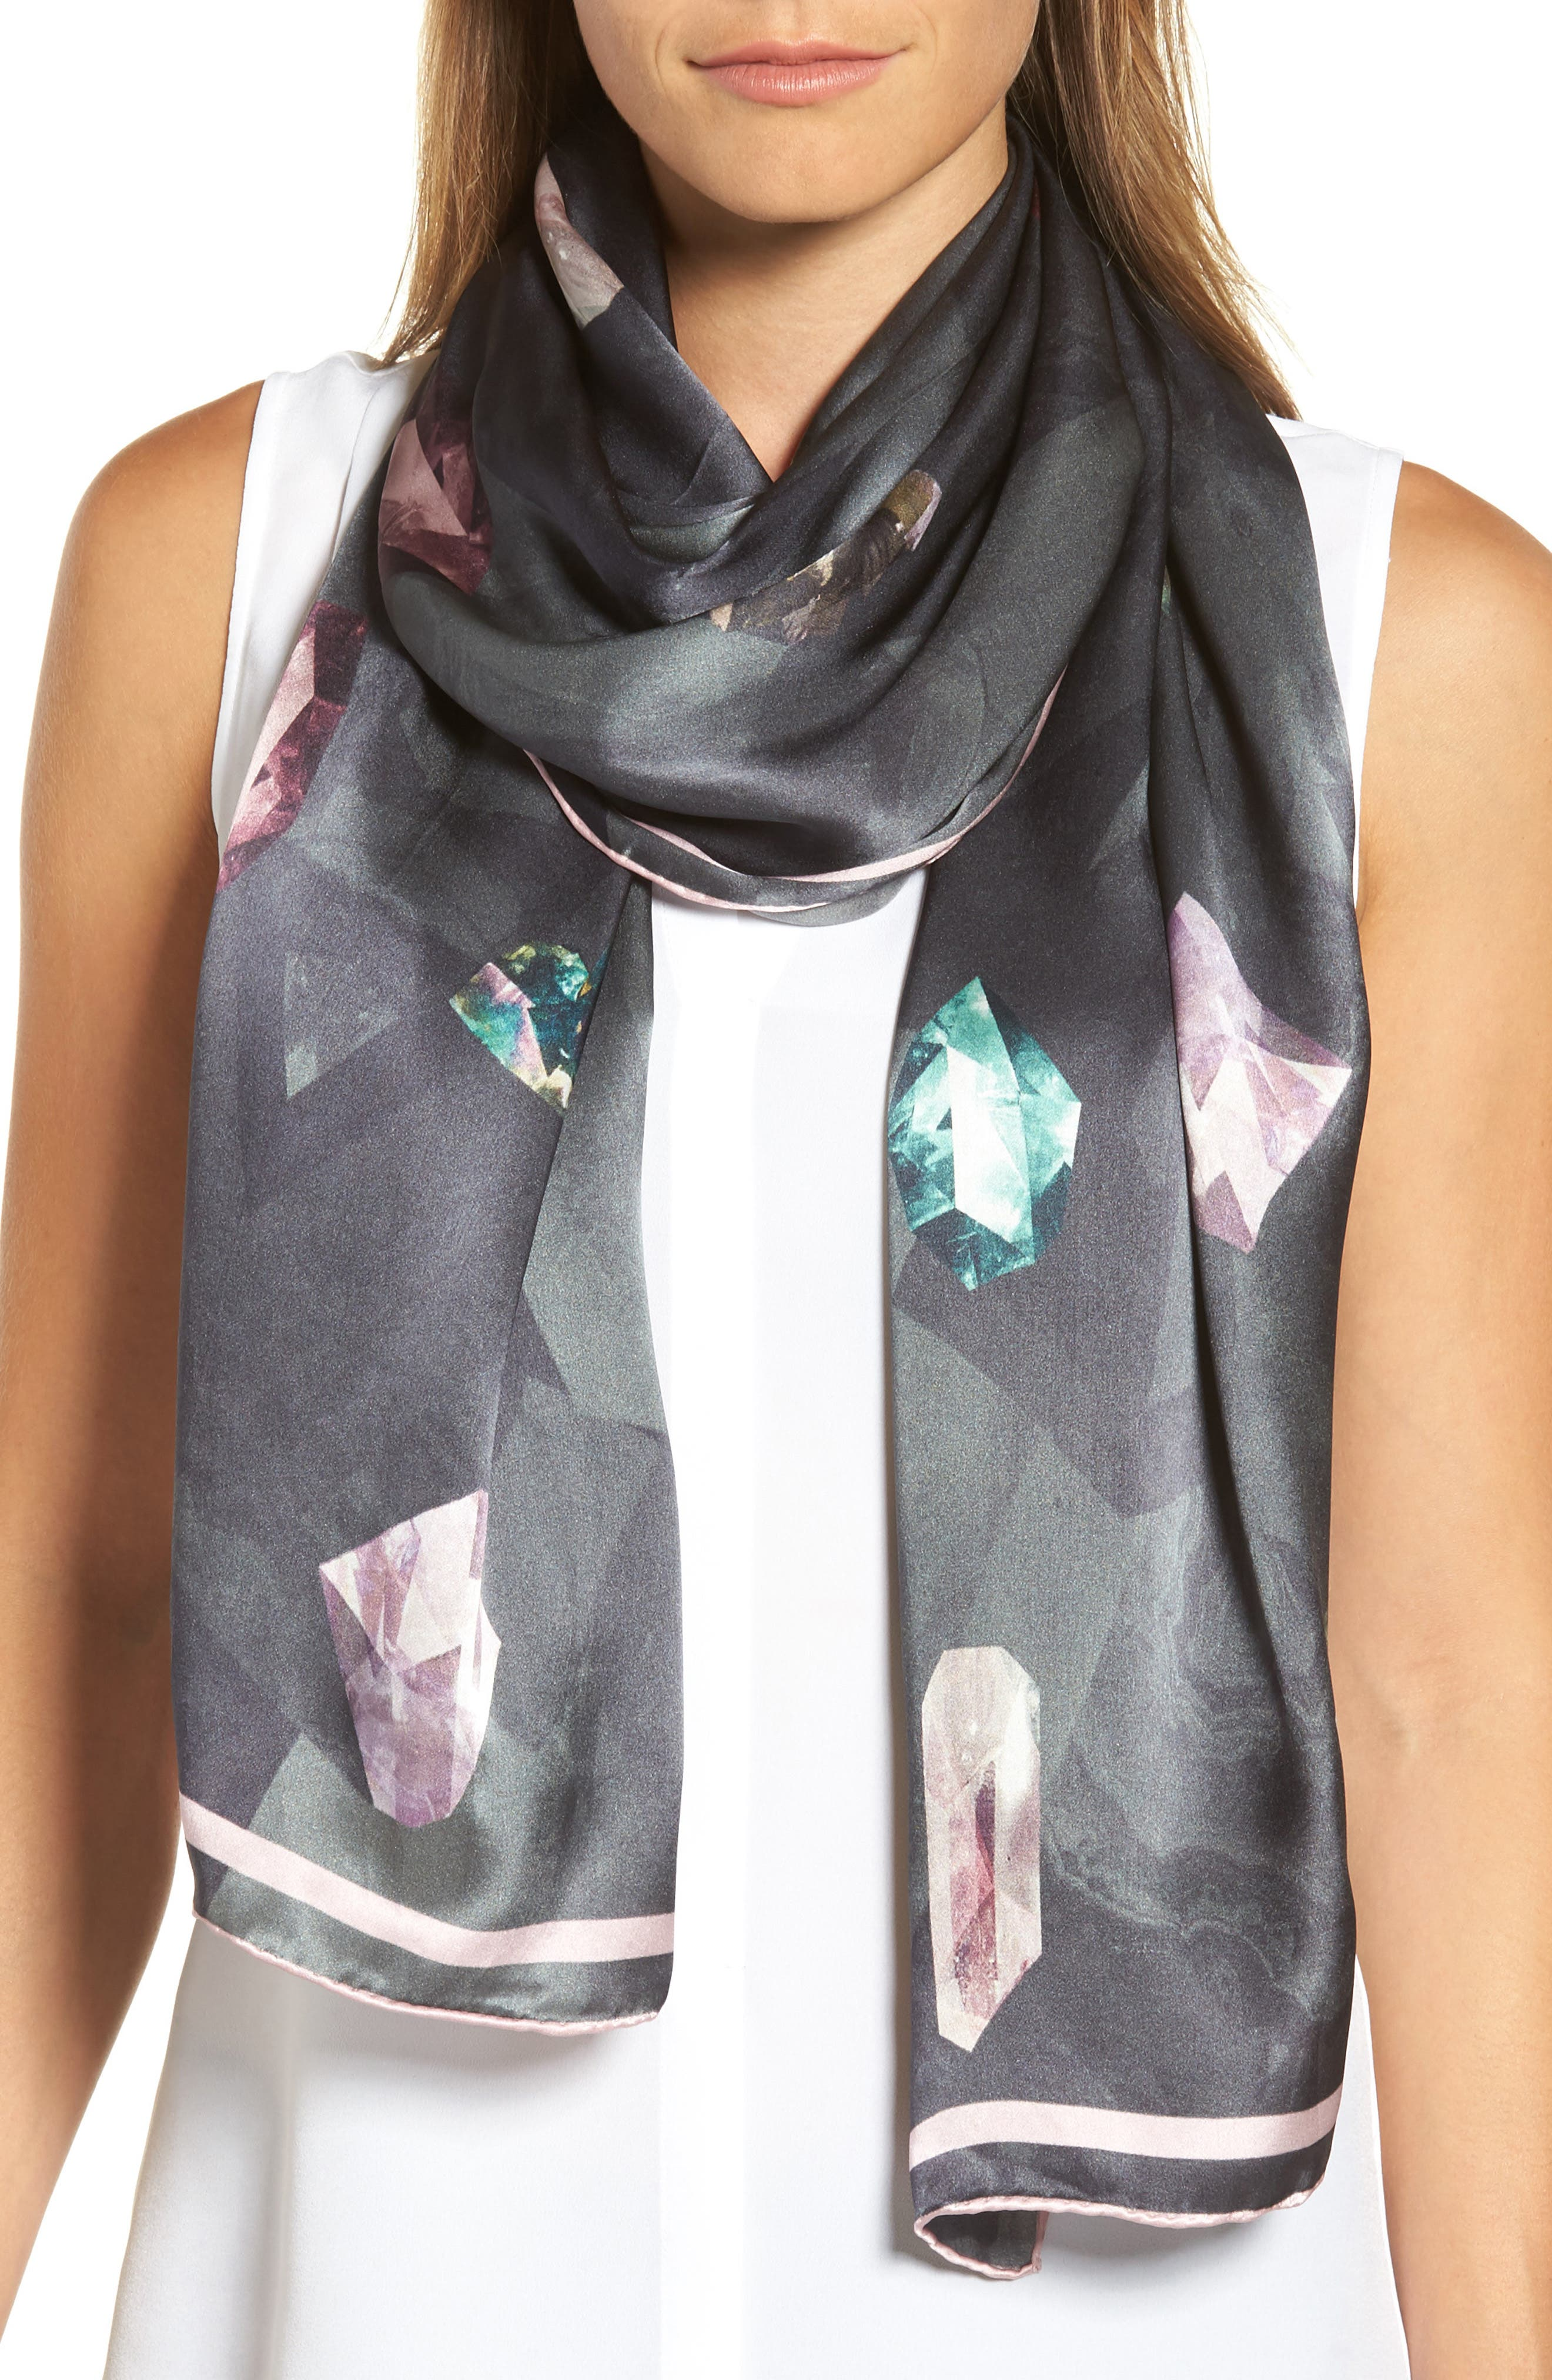 Mirrored Minerals Long Silk Scarf,                         Main,                         color, 021